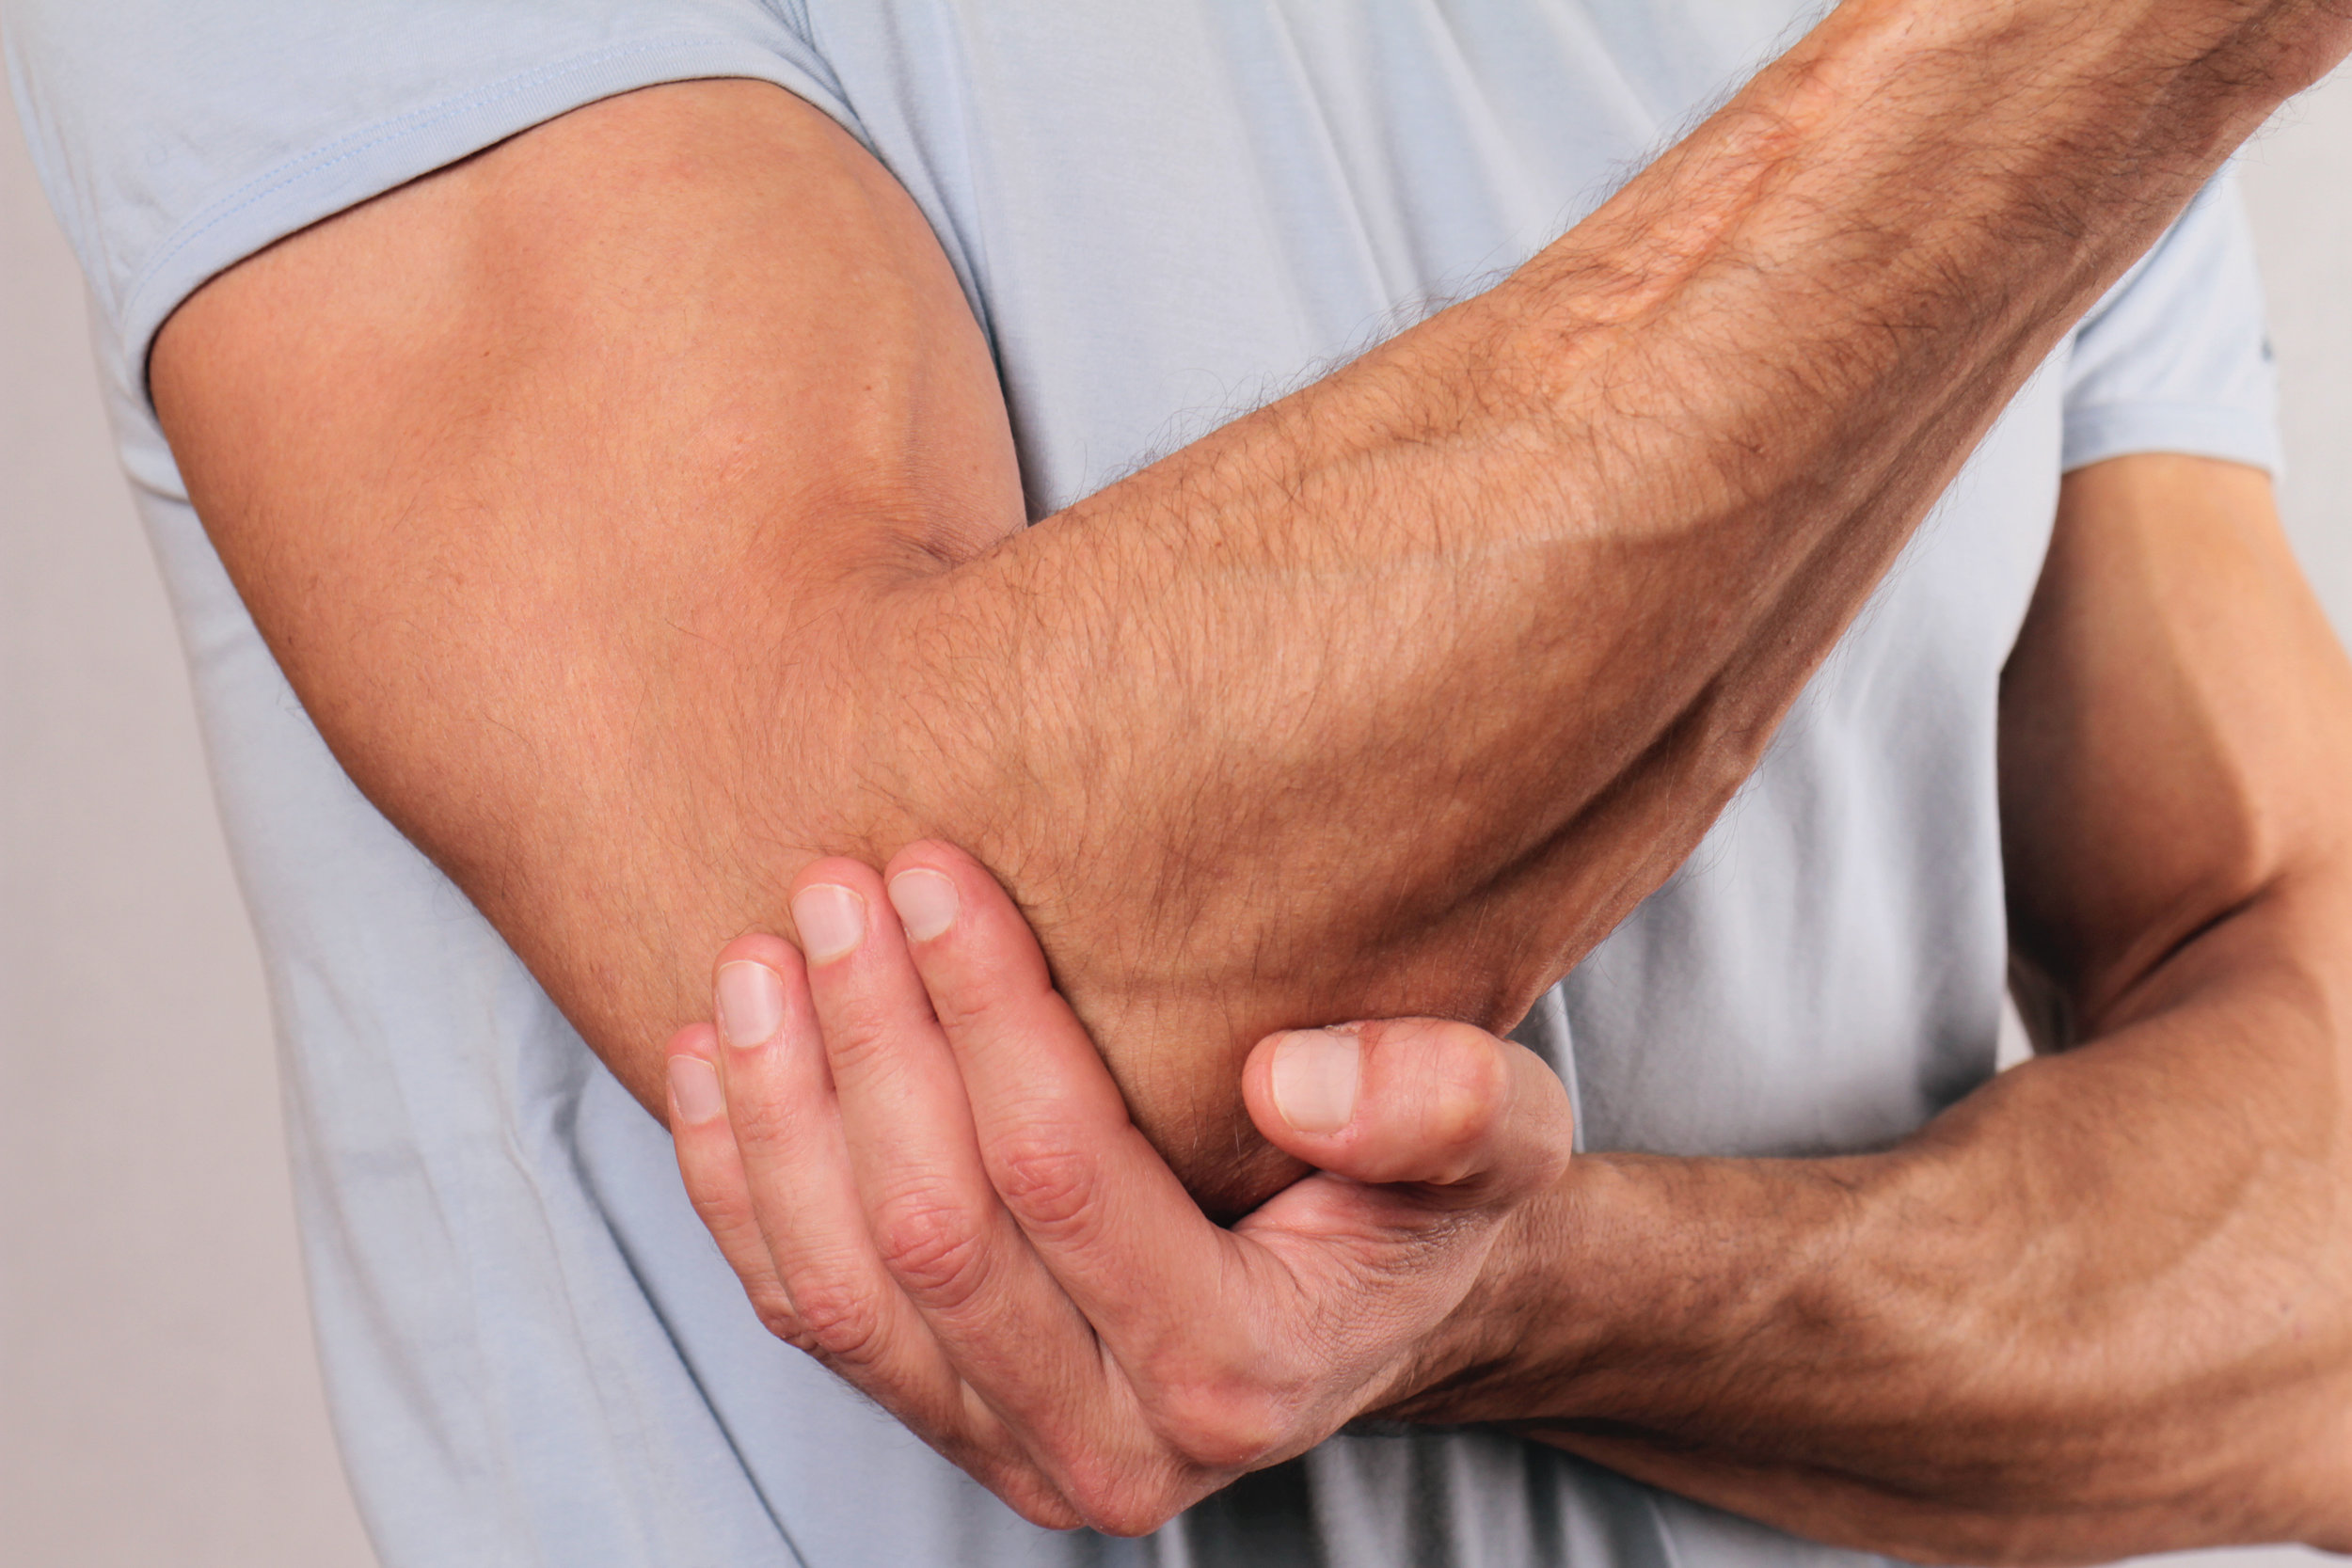 pain-in-elbow-picture-id468402031.jpg